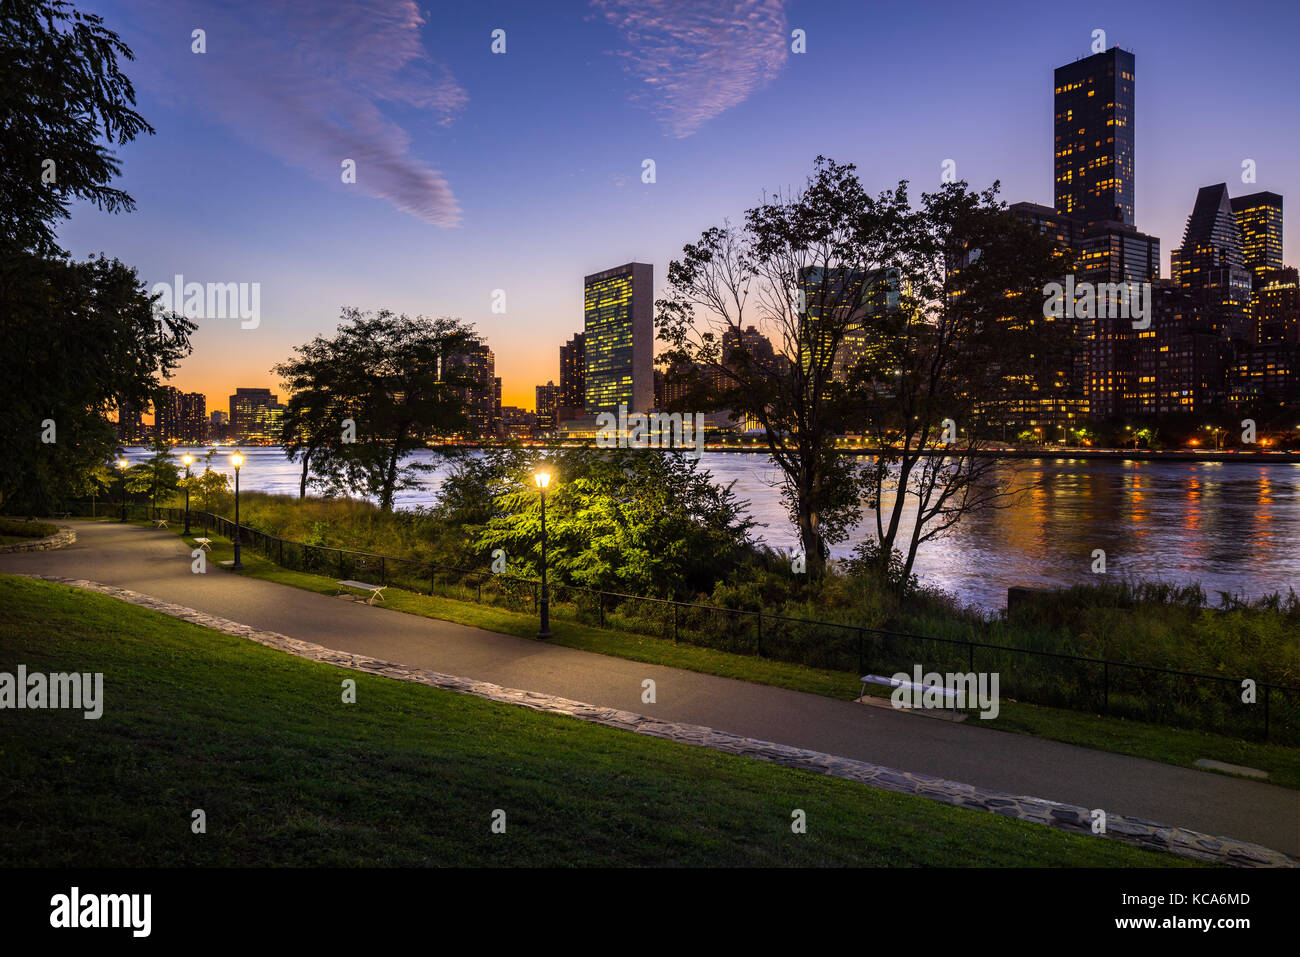 Summer evening view on Manhattan Midtown East from Roosevelt Island with the East River. New York City - Stock Image